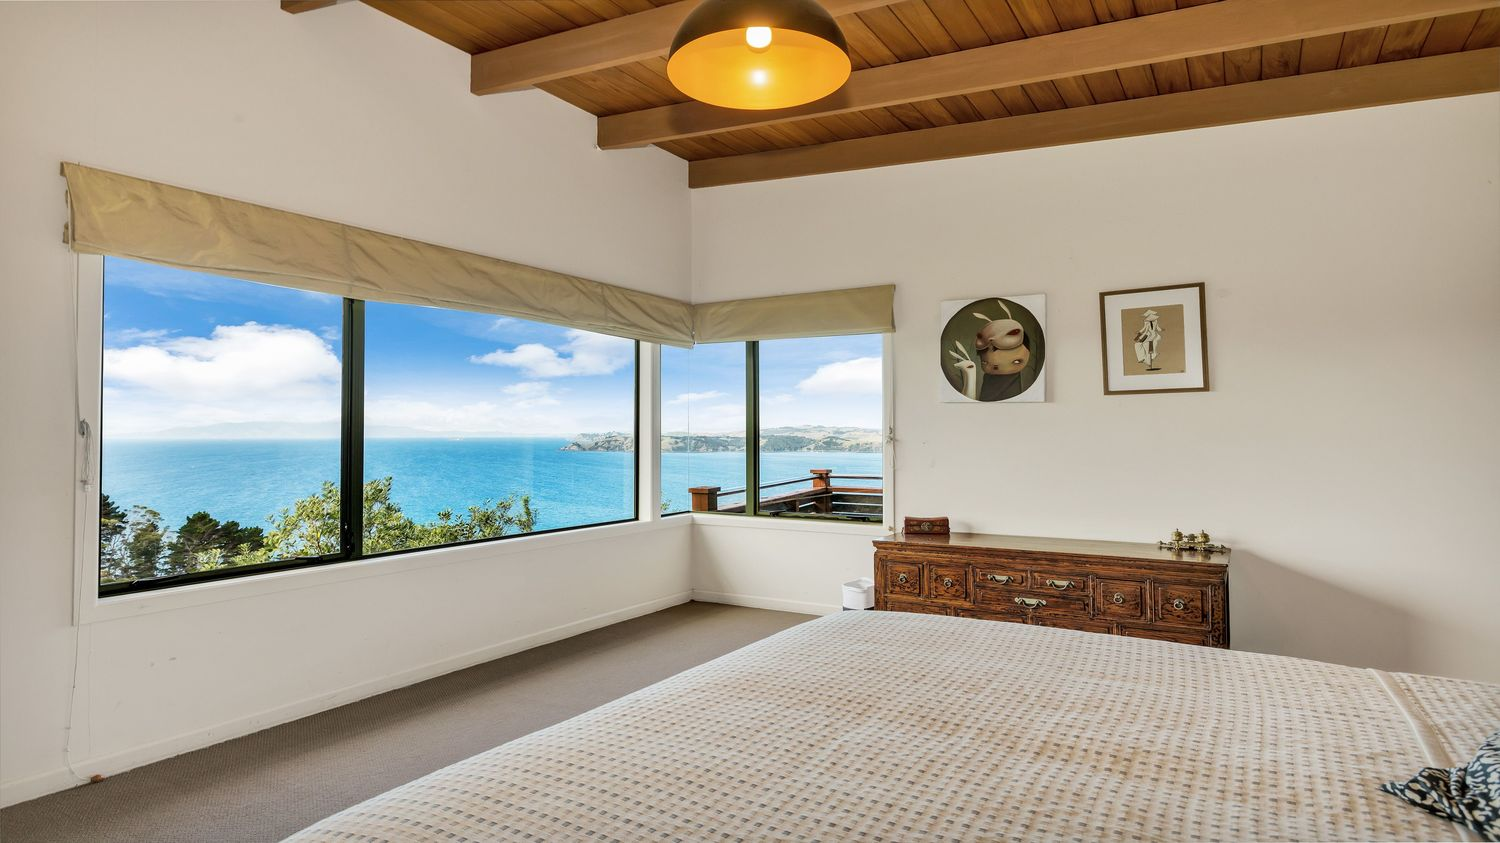 18_Seaview_interior_with_second_bedroom_I_think_and_view_1500x843.jpeg